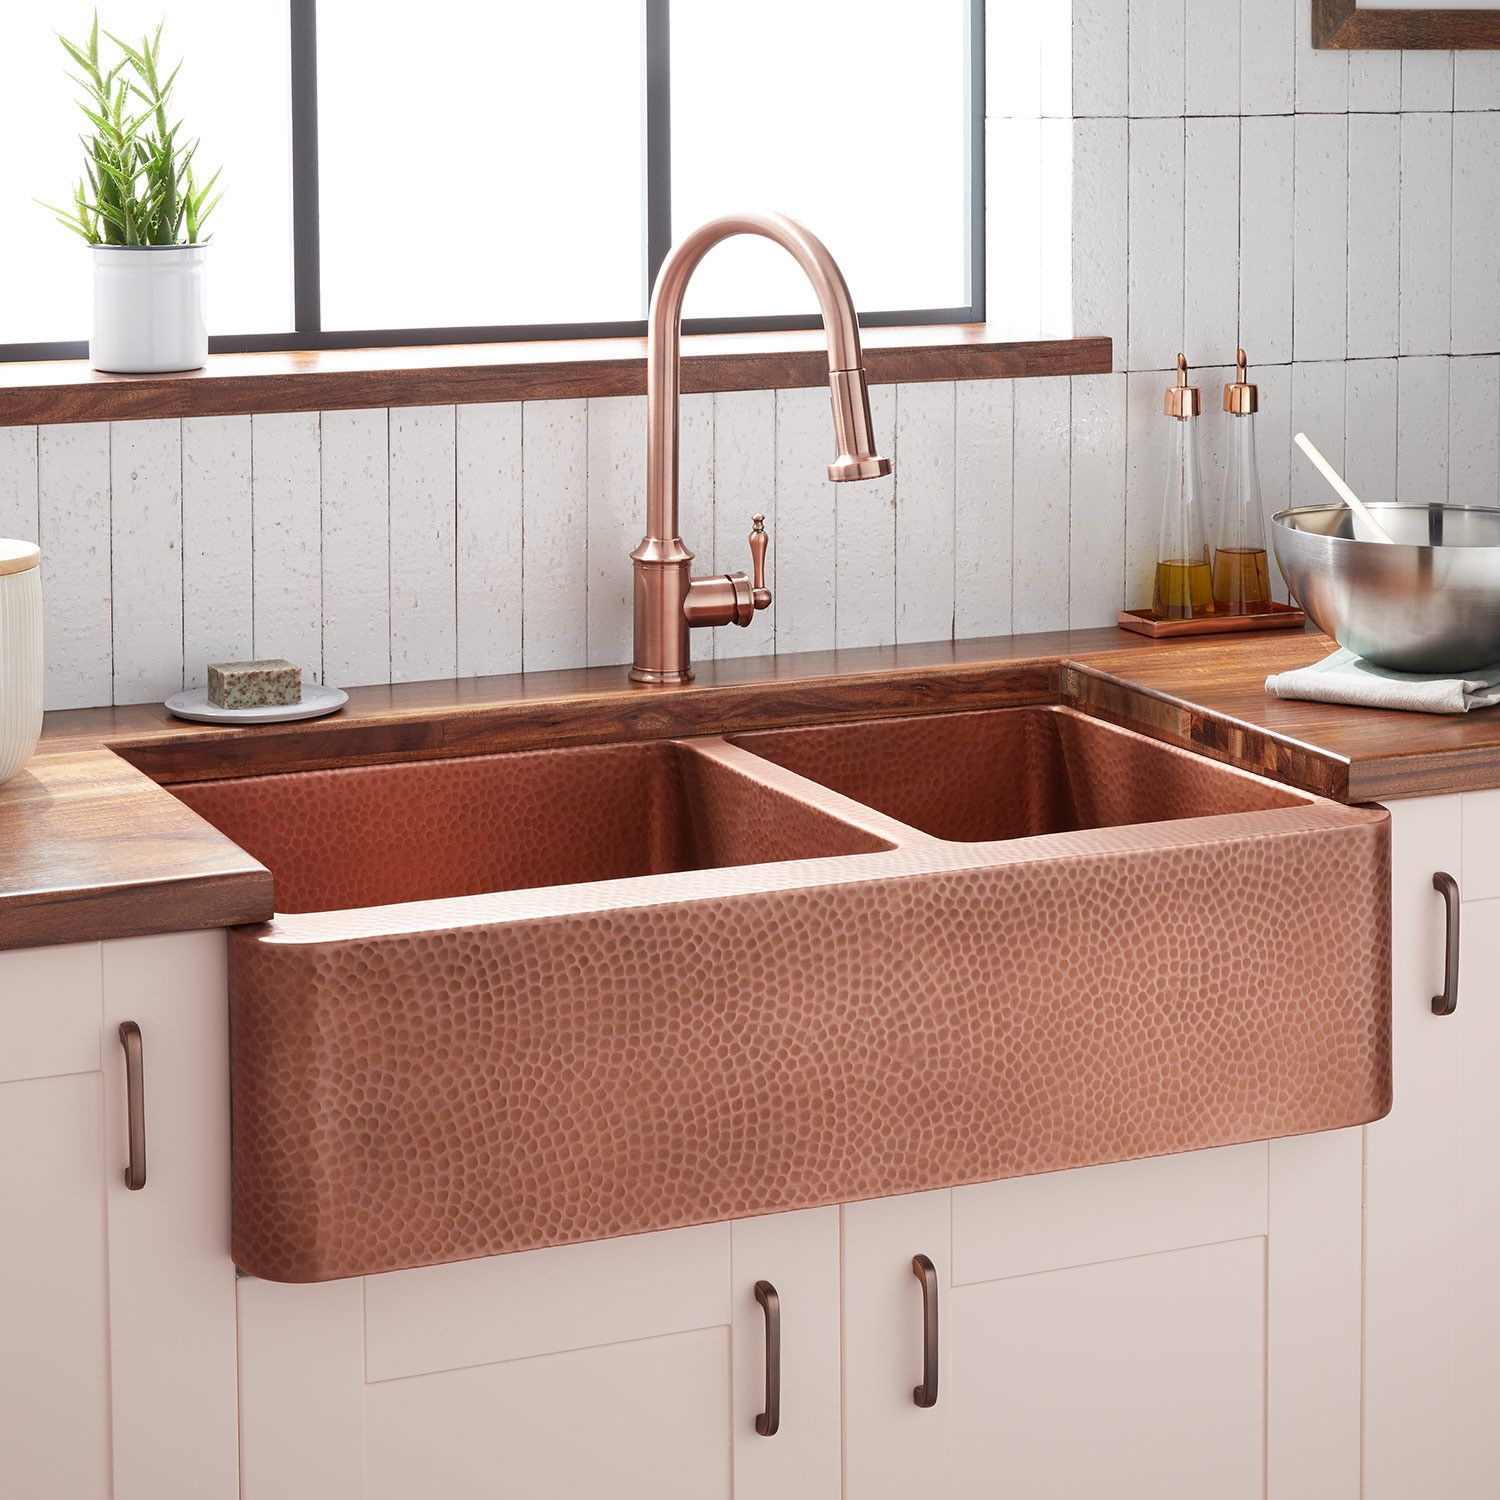 36 Tegan 70 30 Offset Double Bowl Hammered Copper Farmhouse Sink Farmhouse Sinks Kitchen In 2020 Copper Kitchen Sink Copper Farmhouse Sinks Farmhouse Sink Kitchen